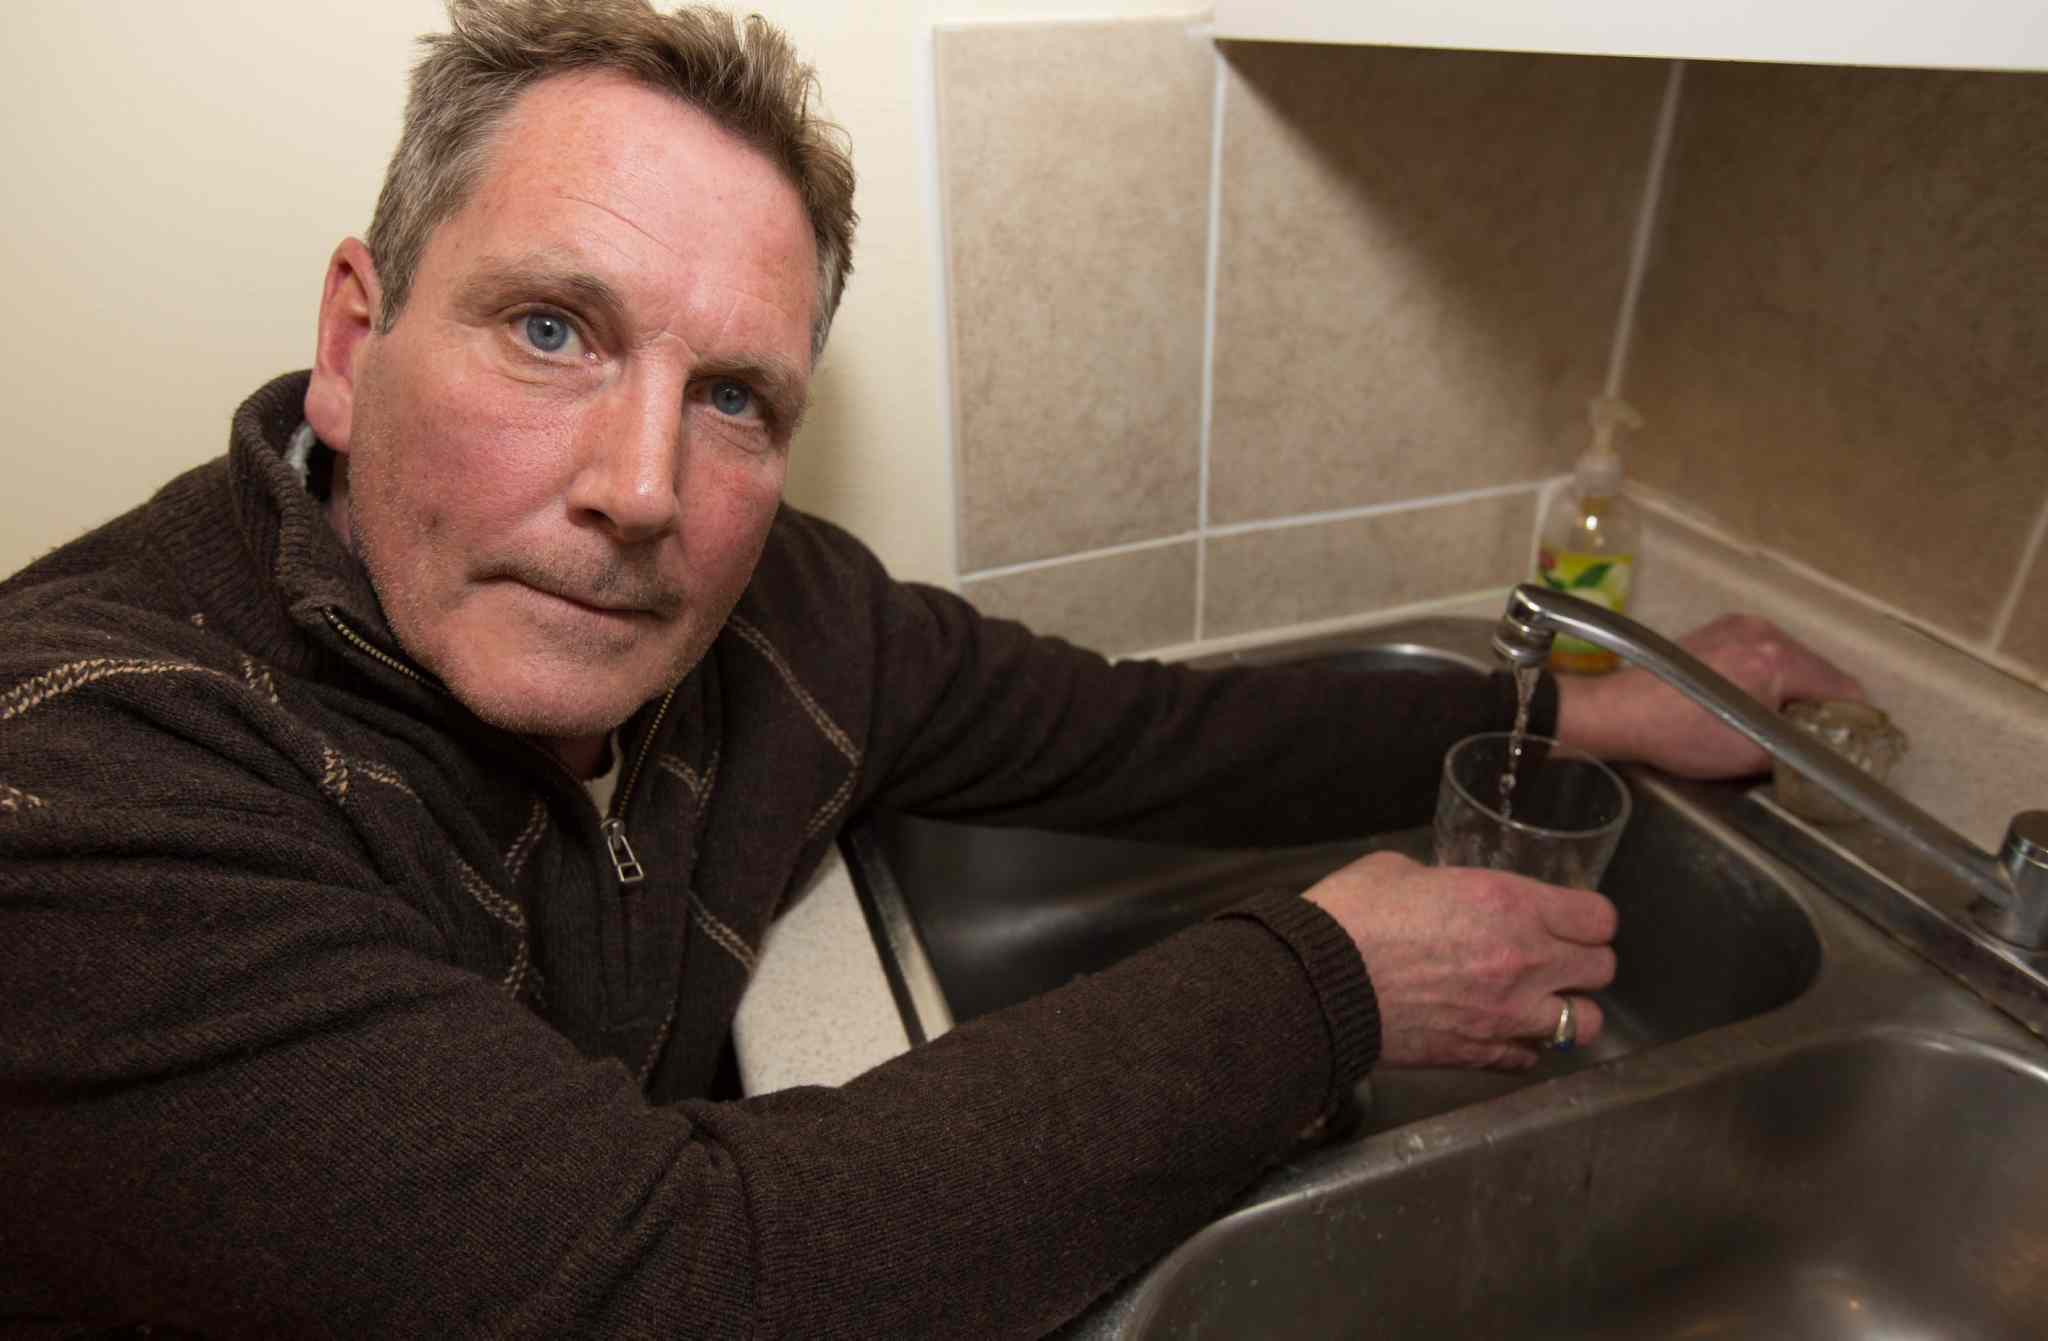 Todd Kerr complained to the Free Press and the city 'adjusted' its stand on taps.